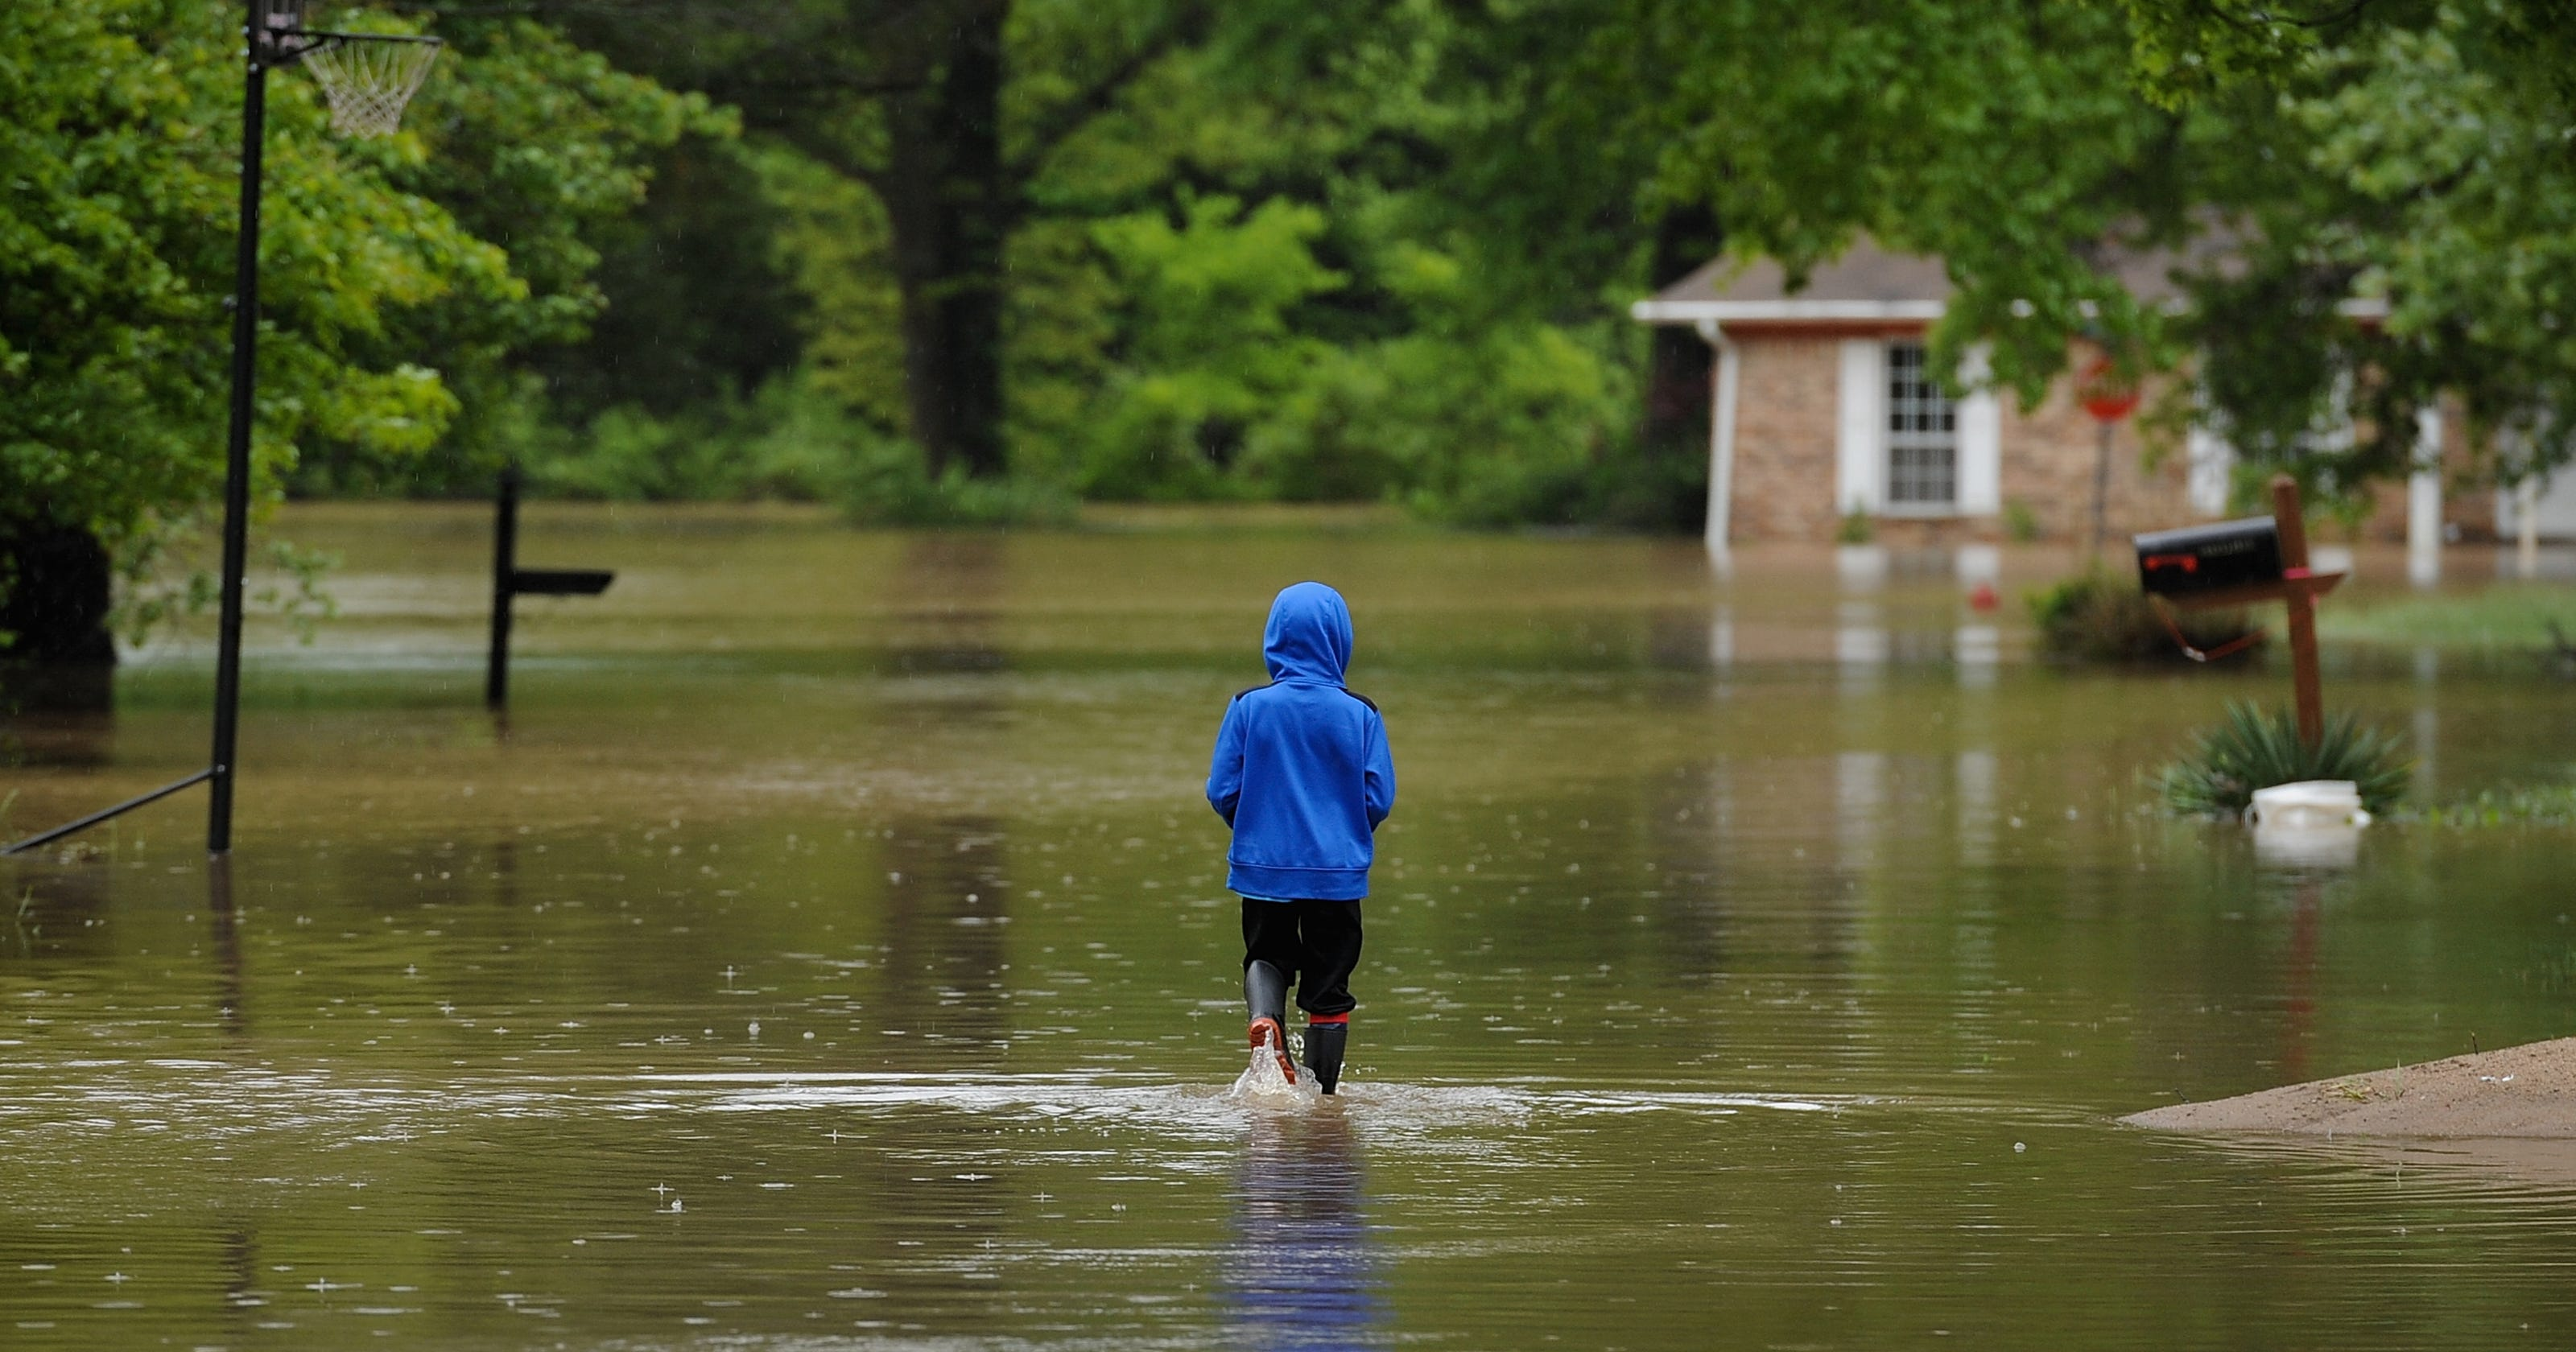 Missouri floods caused by '1-in-1,000 year' rainfall